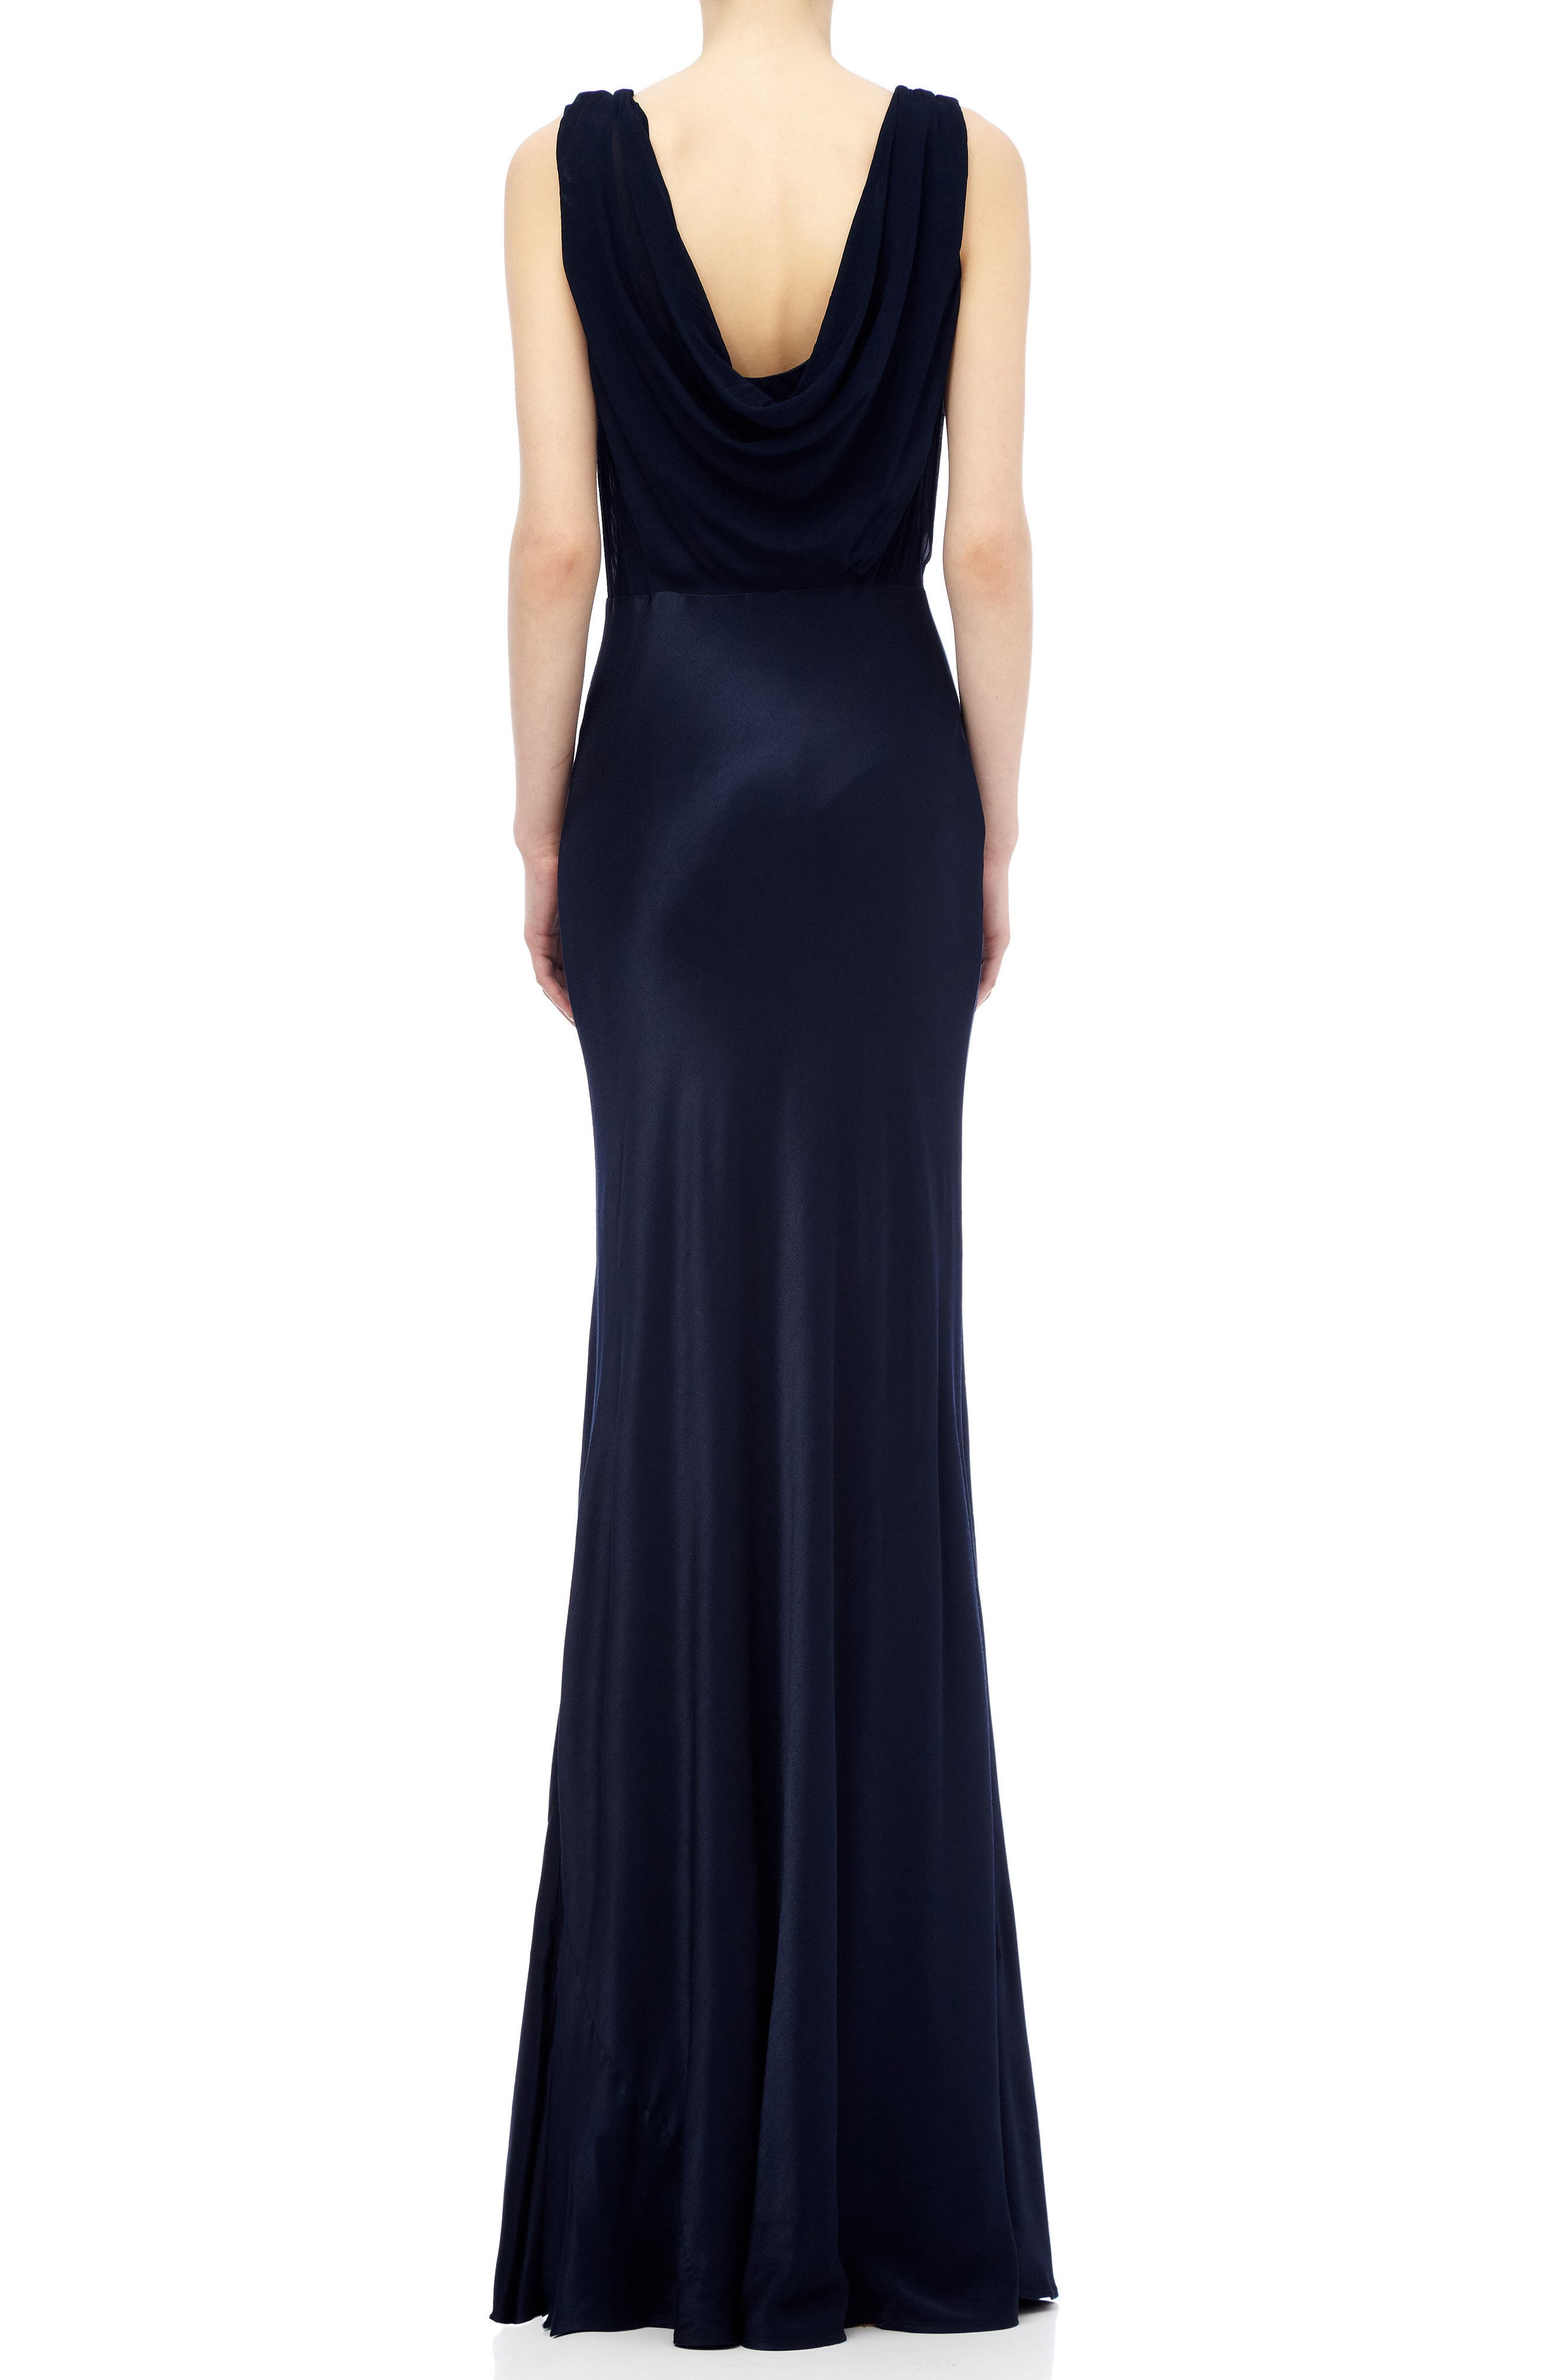 Claudia Cowl Back Gown,                             Alternate thumbnail 2, color,                             Navy